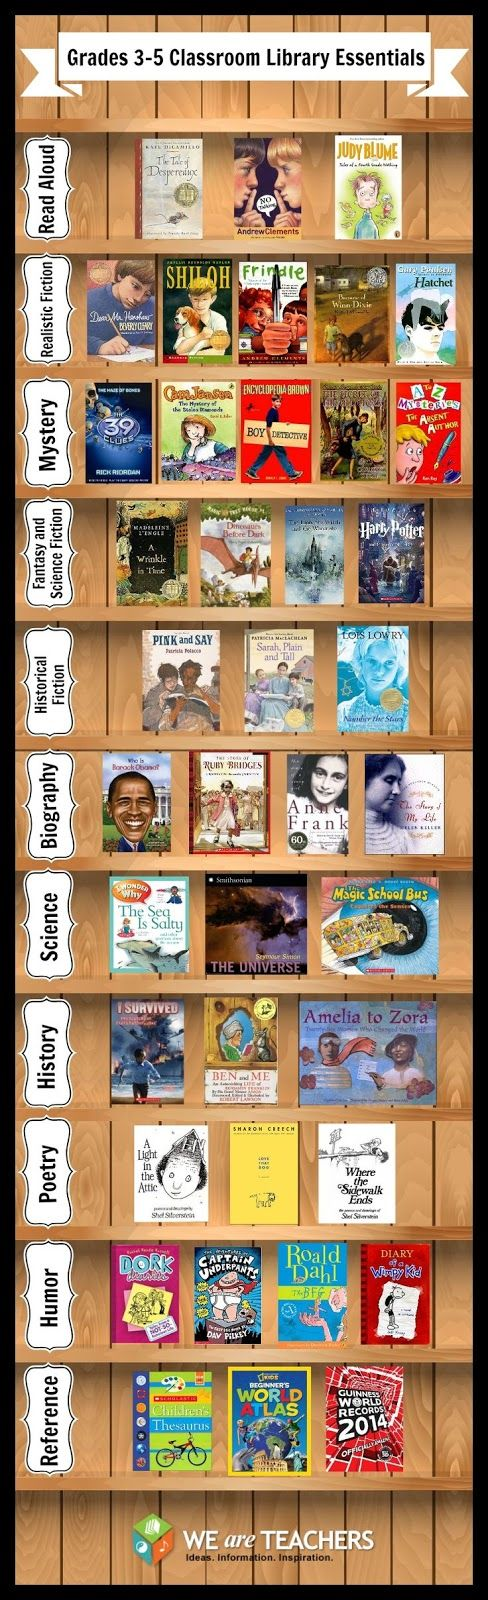 Looking to add to your 3rd, 4th, or 5th grade classroom library? This is the book reference guide for you!!